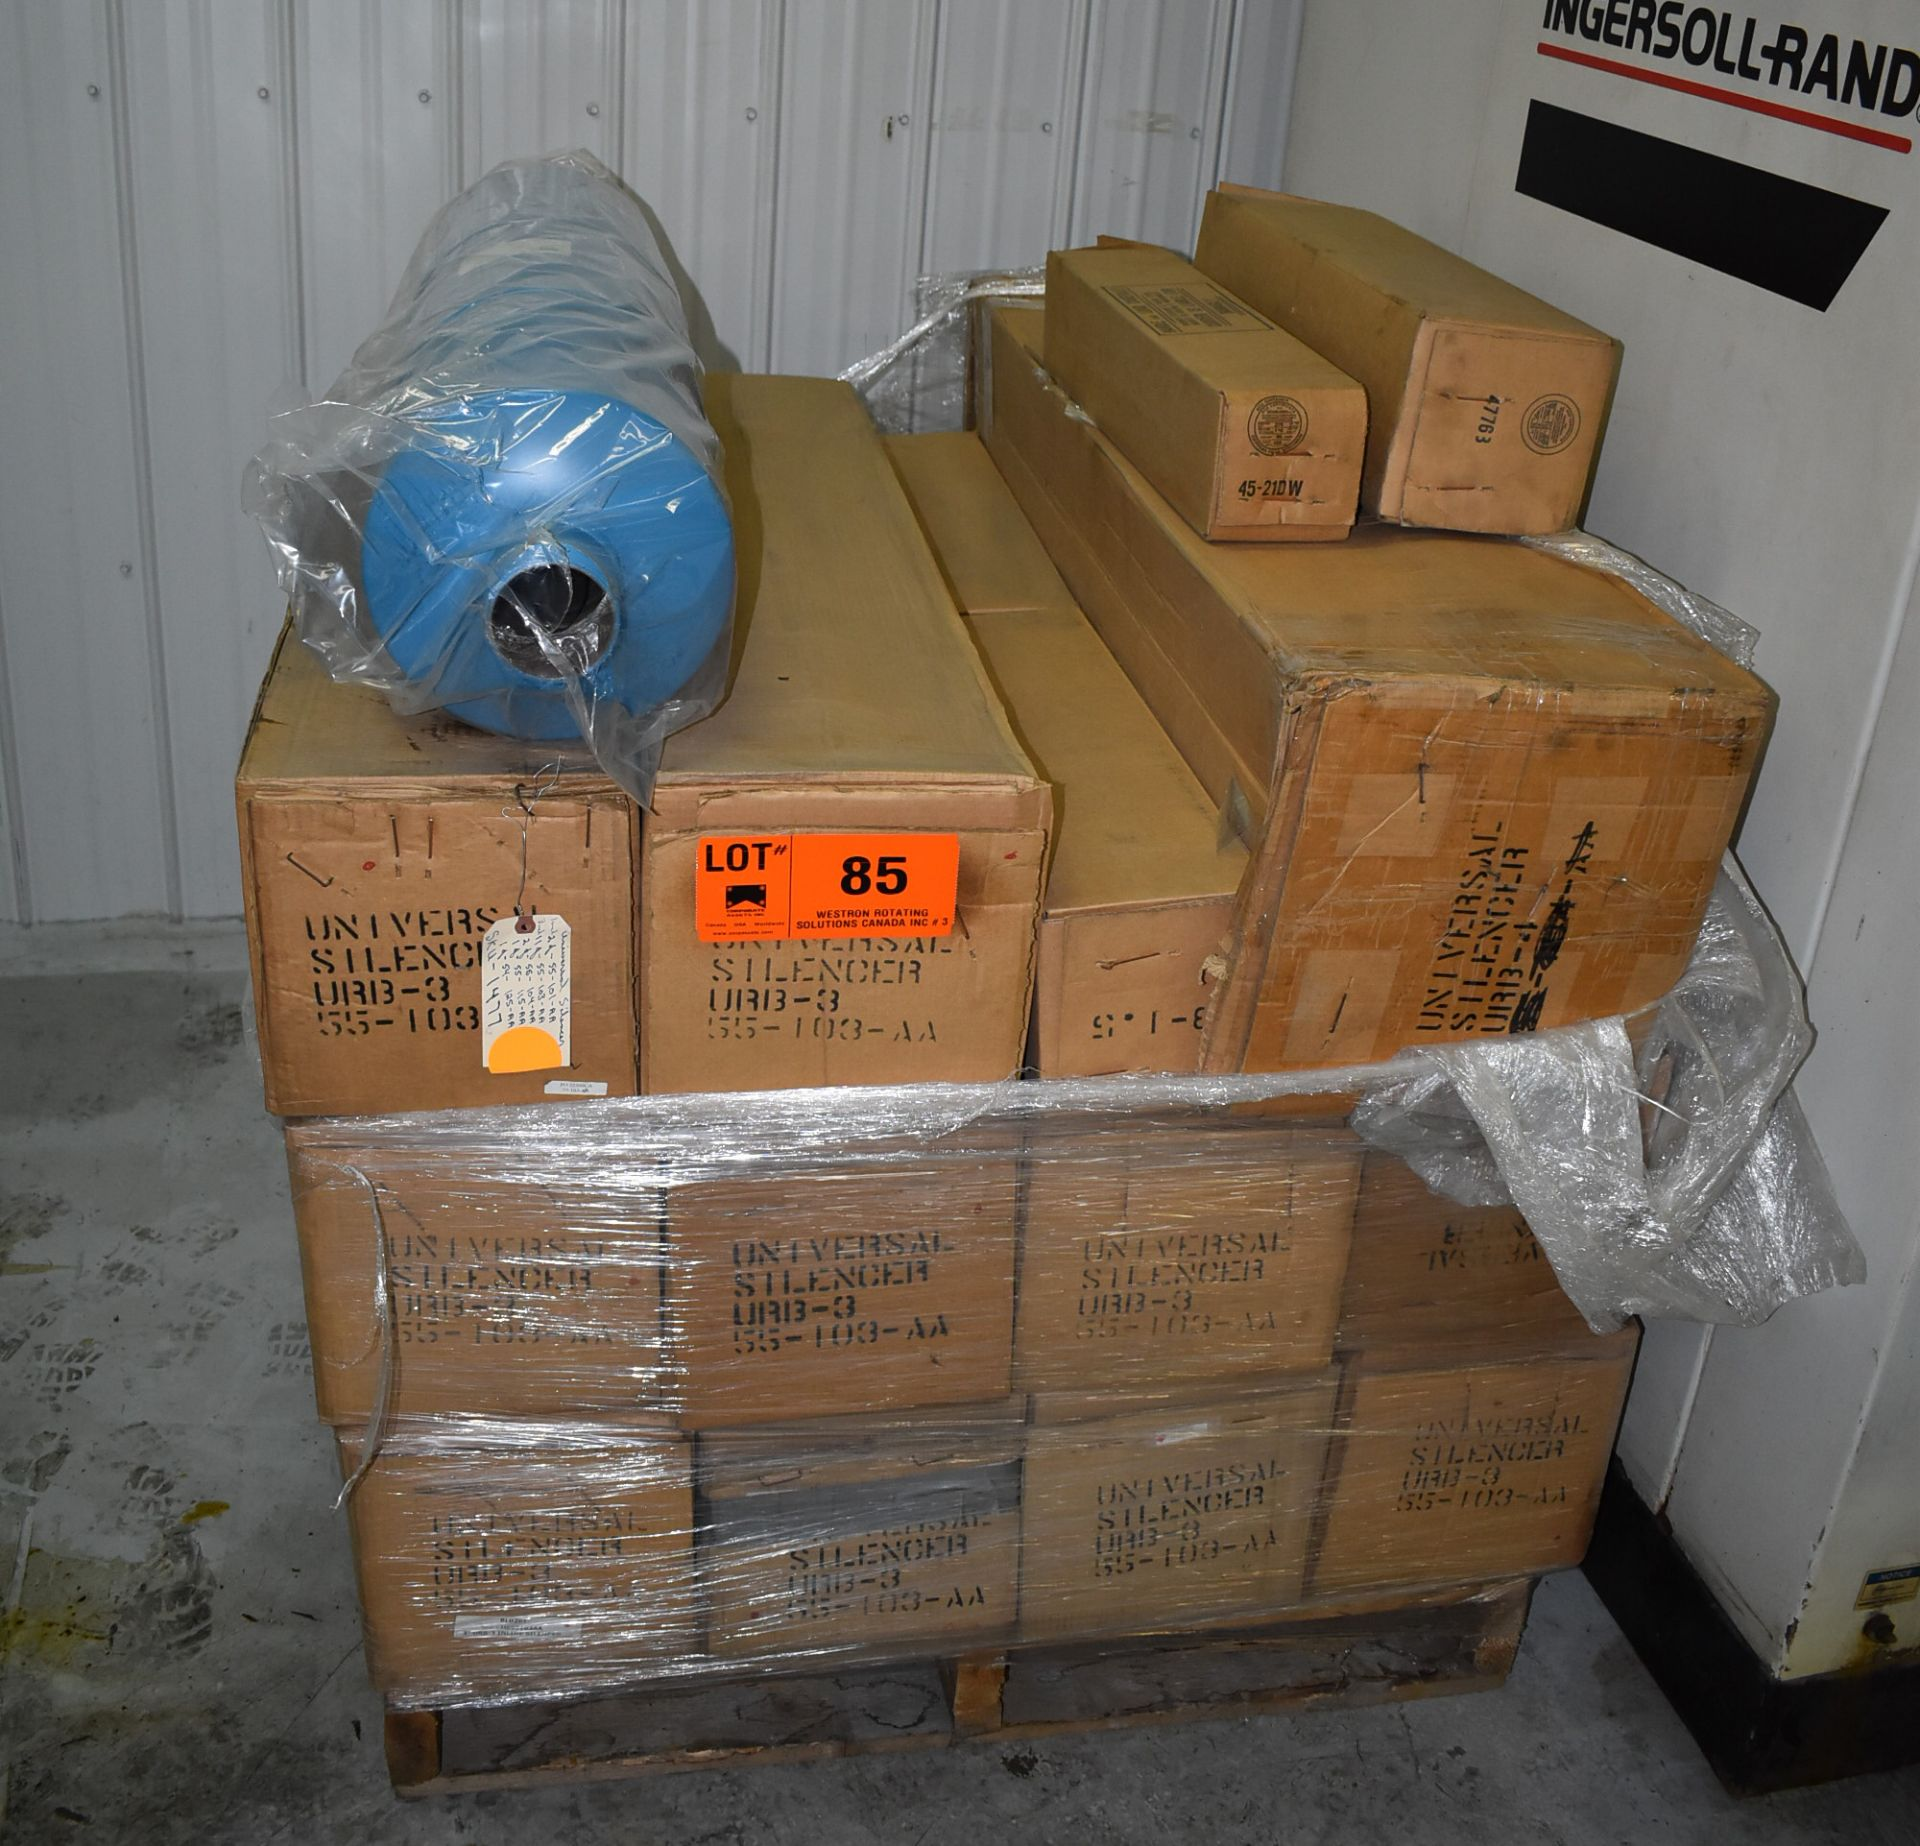 LOT/ SKID OF UNIVERSAL SILENCERS (APPROX. 12) (CI) [RIGGING FEE FOR LOT #85 - $25 CAD PLUS